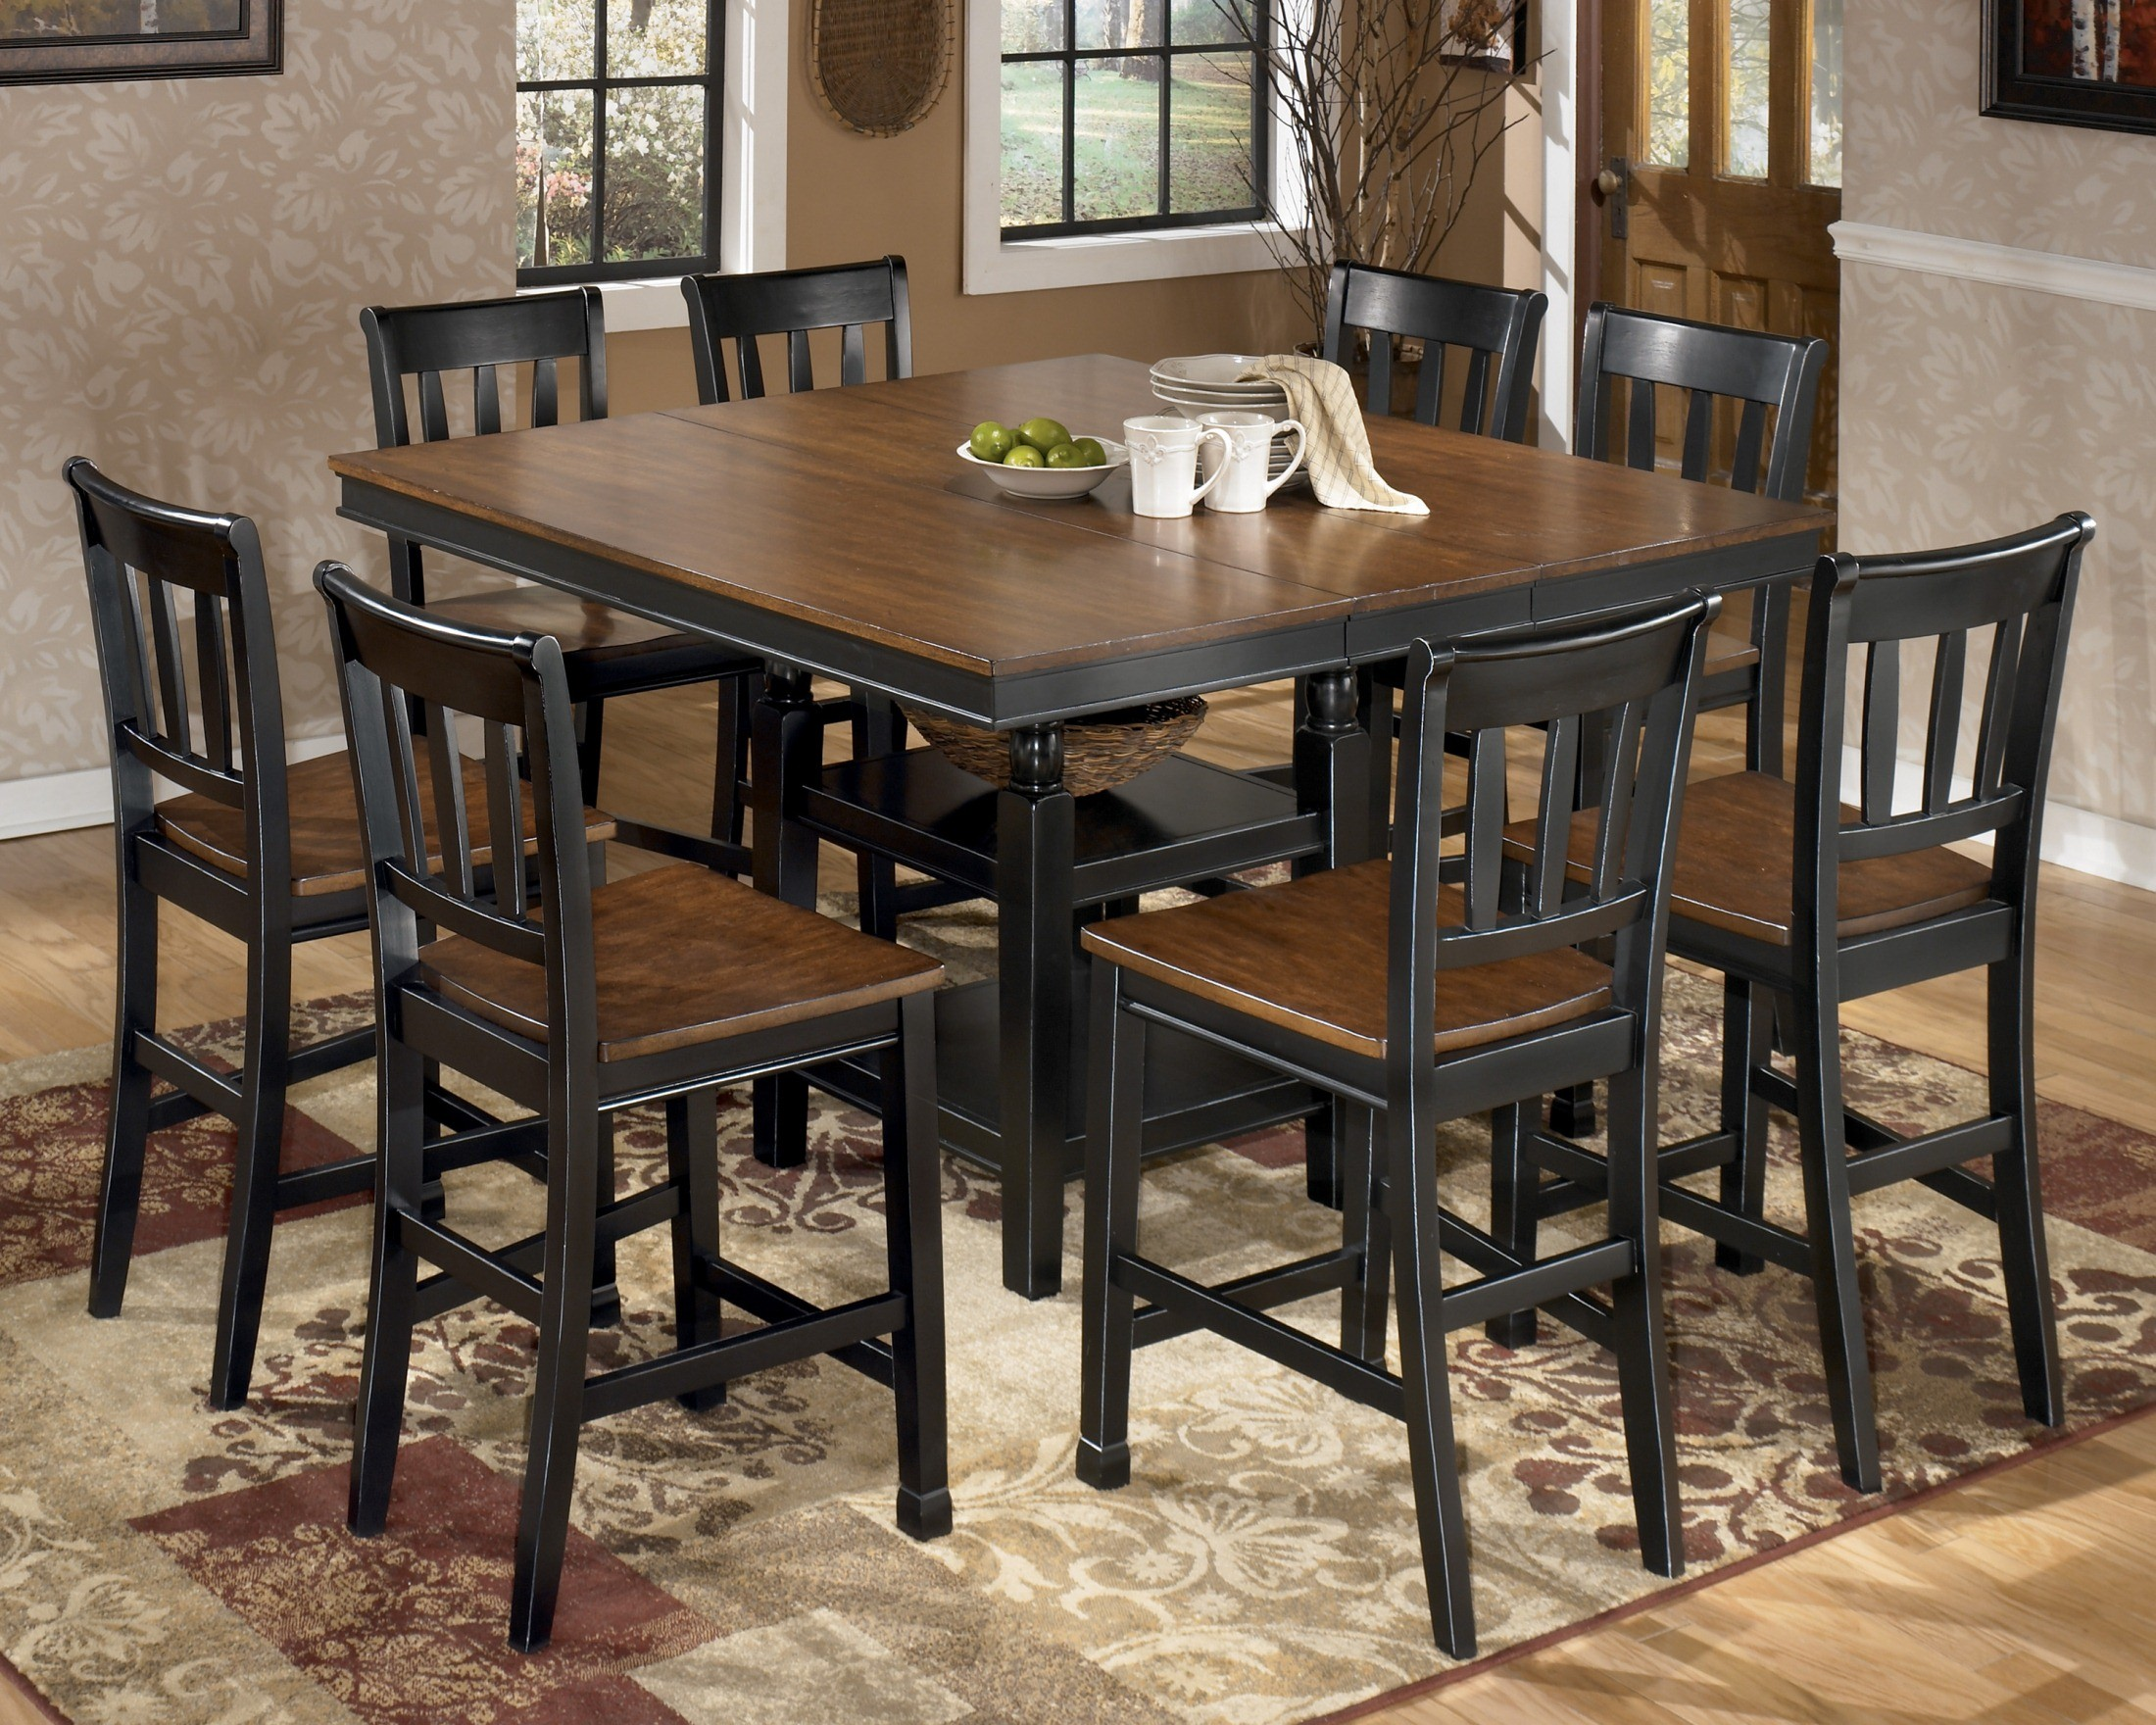 Owingsville Square Counter Height Extendable Dining Room Set from ...